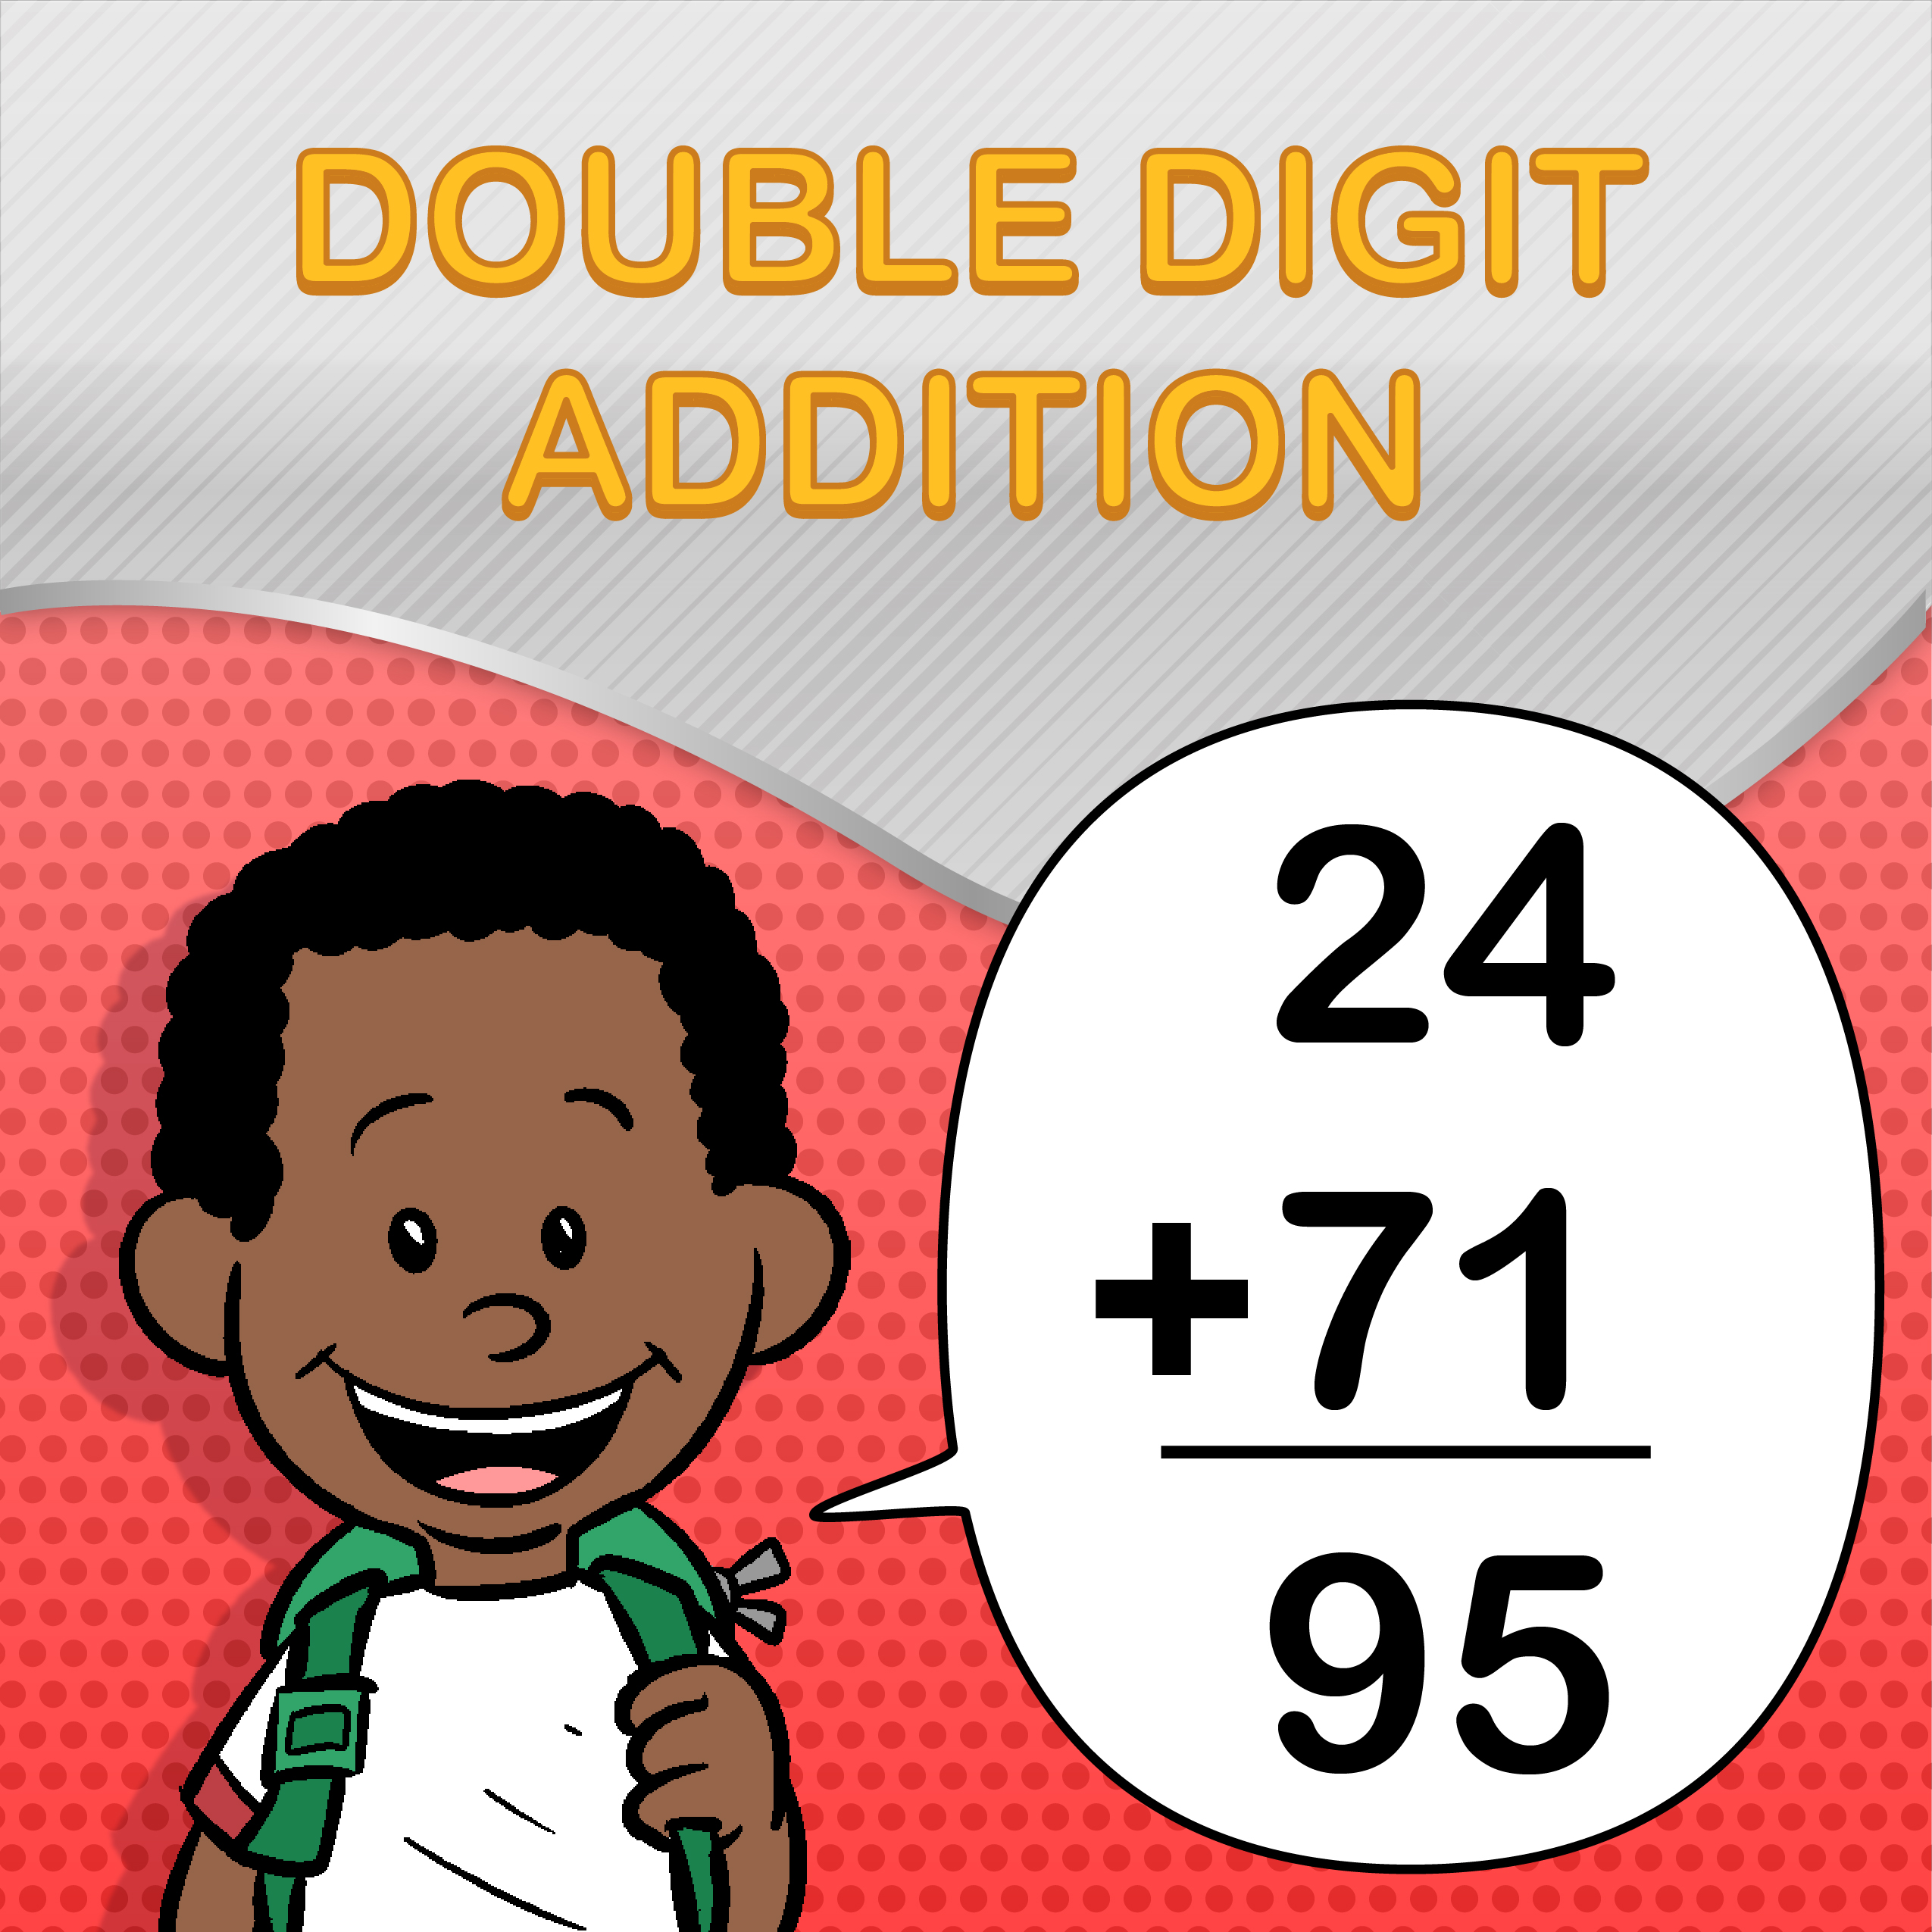 Double Digit Addition Worksheets for Kids   Printable PDFs [ 2550 x 2550 Pixel ]